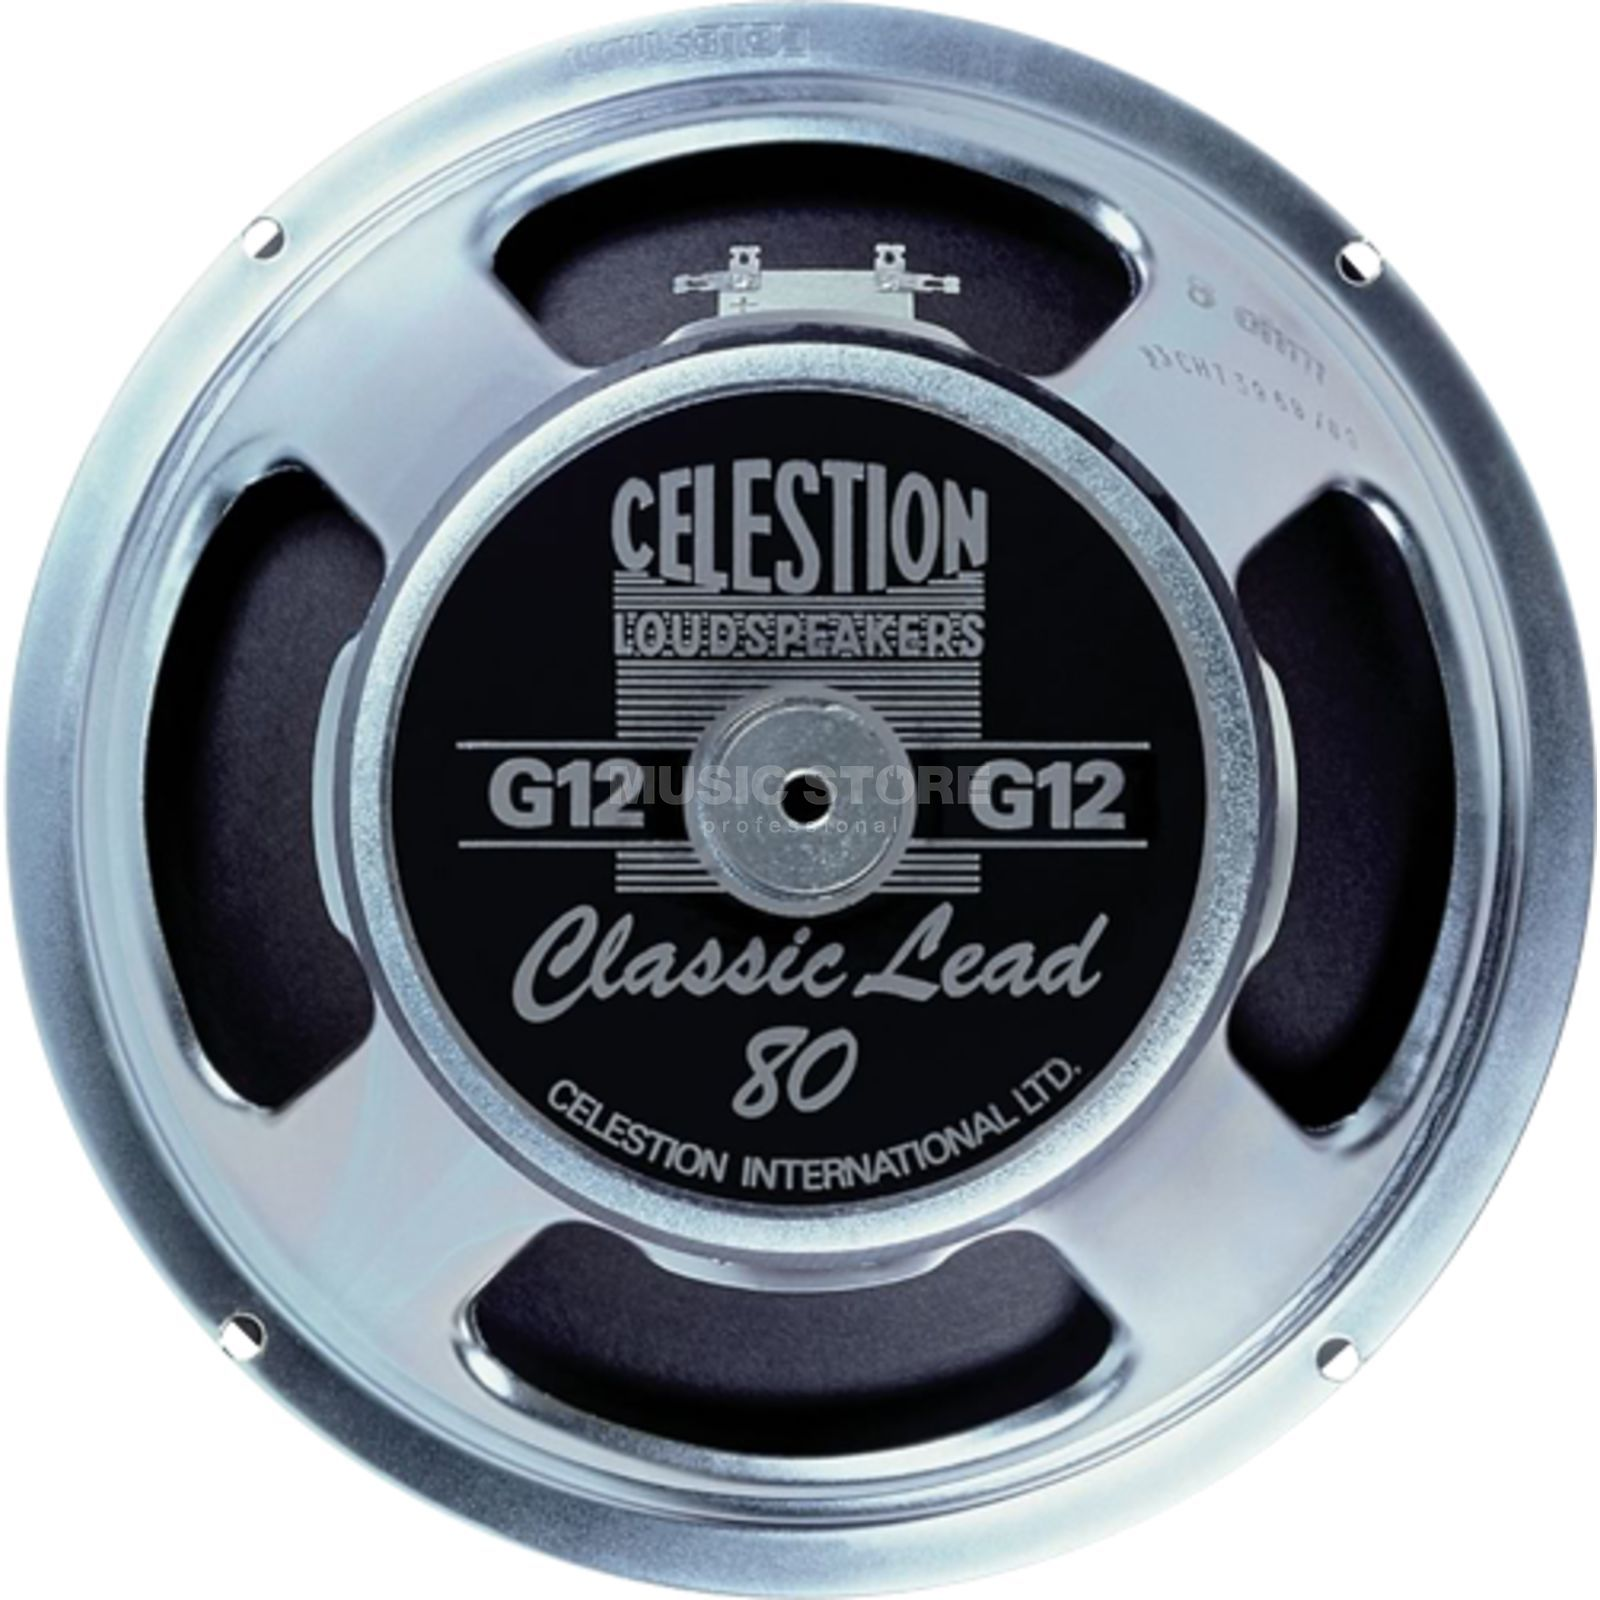 "Celestion Classic Lead 80 12"" Speaker 16 Ohm Produktbild"